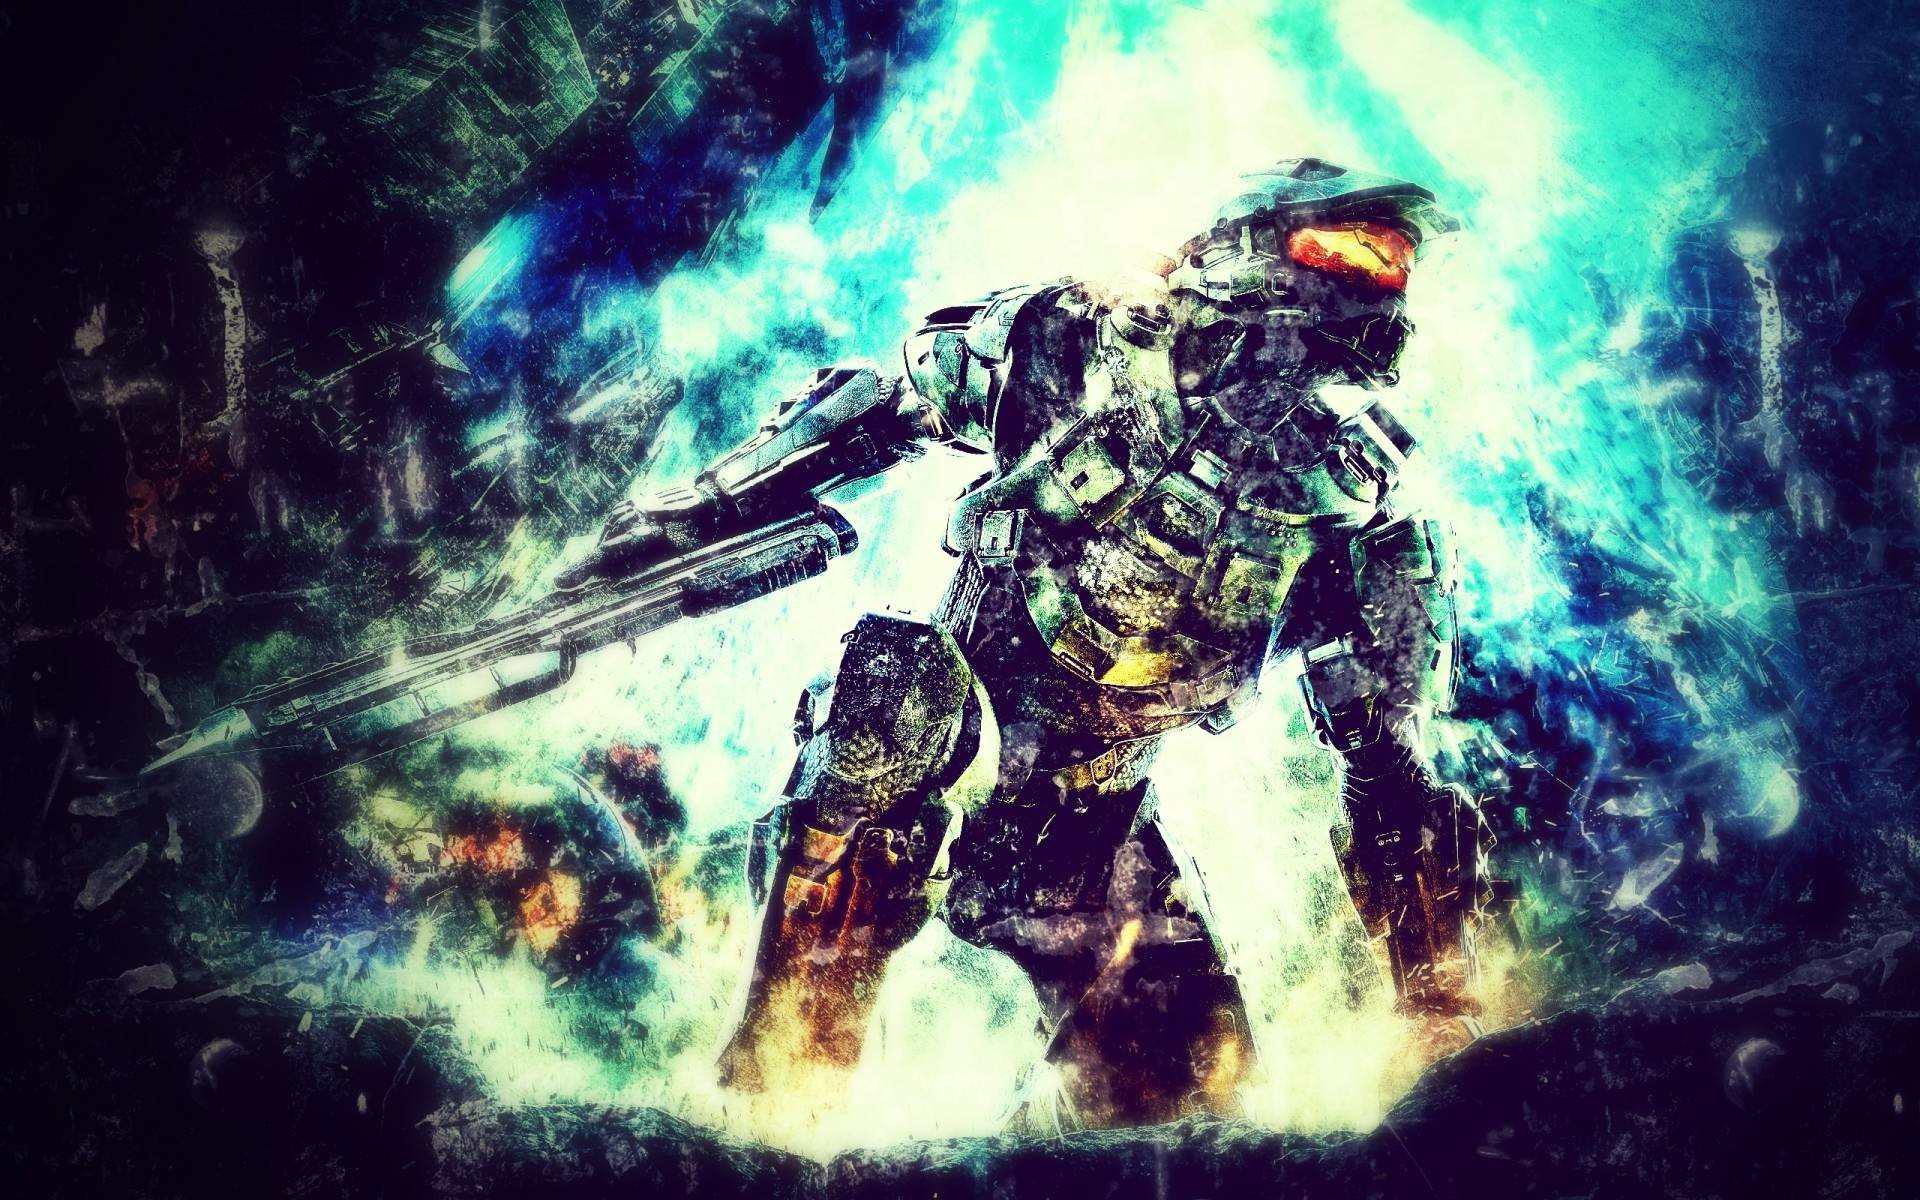 Great Wallpaper Home Screen Epic - 507142-vertical-epic-gaming-wallpapers-1920x1200  Collection_634679.jpg